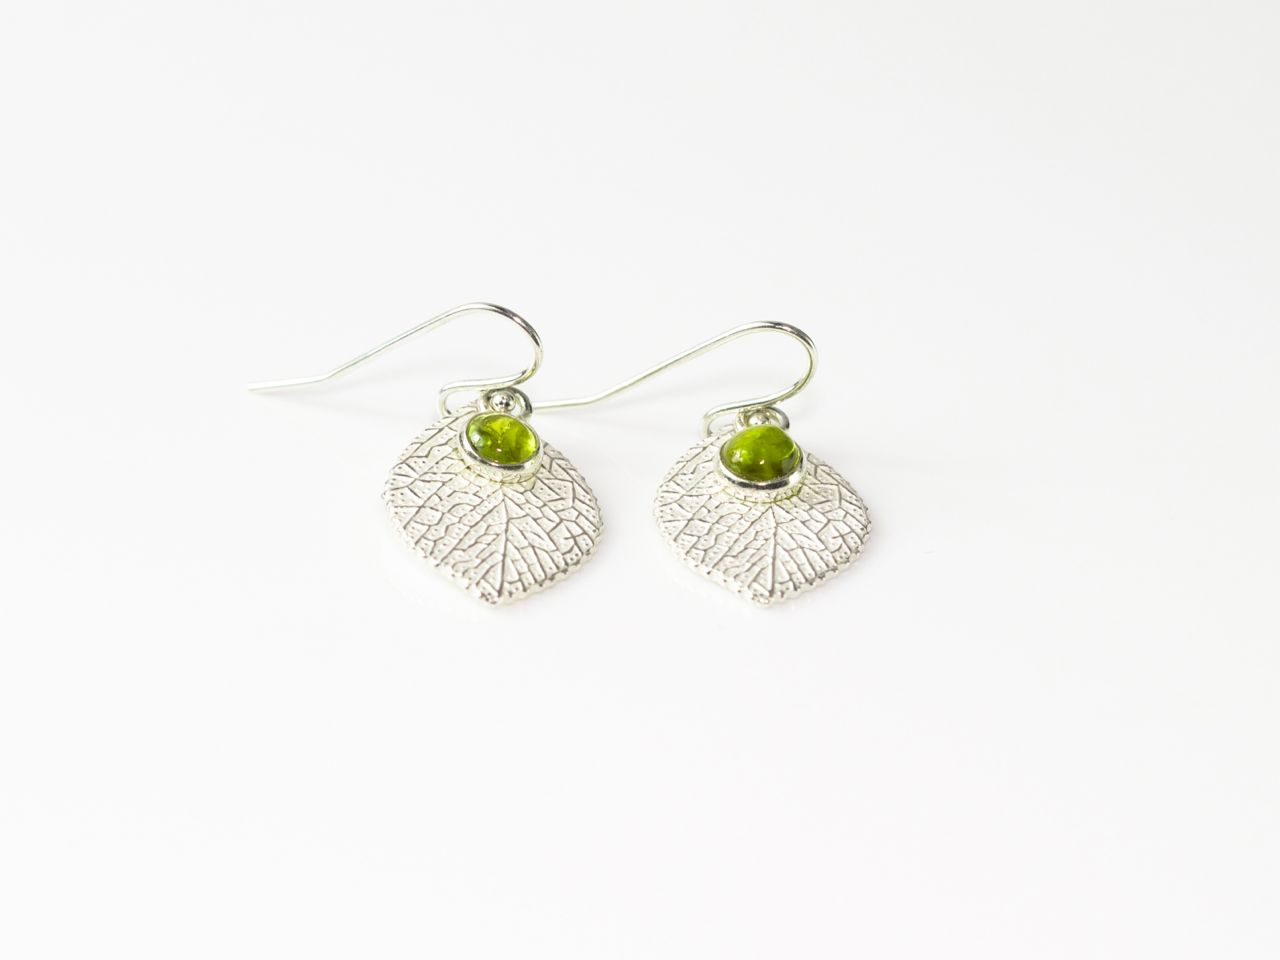 Peridot Leaf Earrings Sterling Silver With Polished Round Cabochon Sold Out